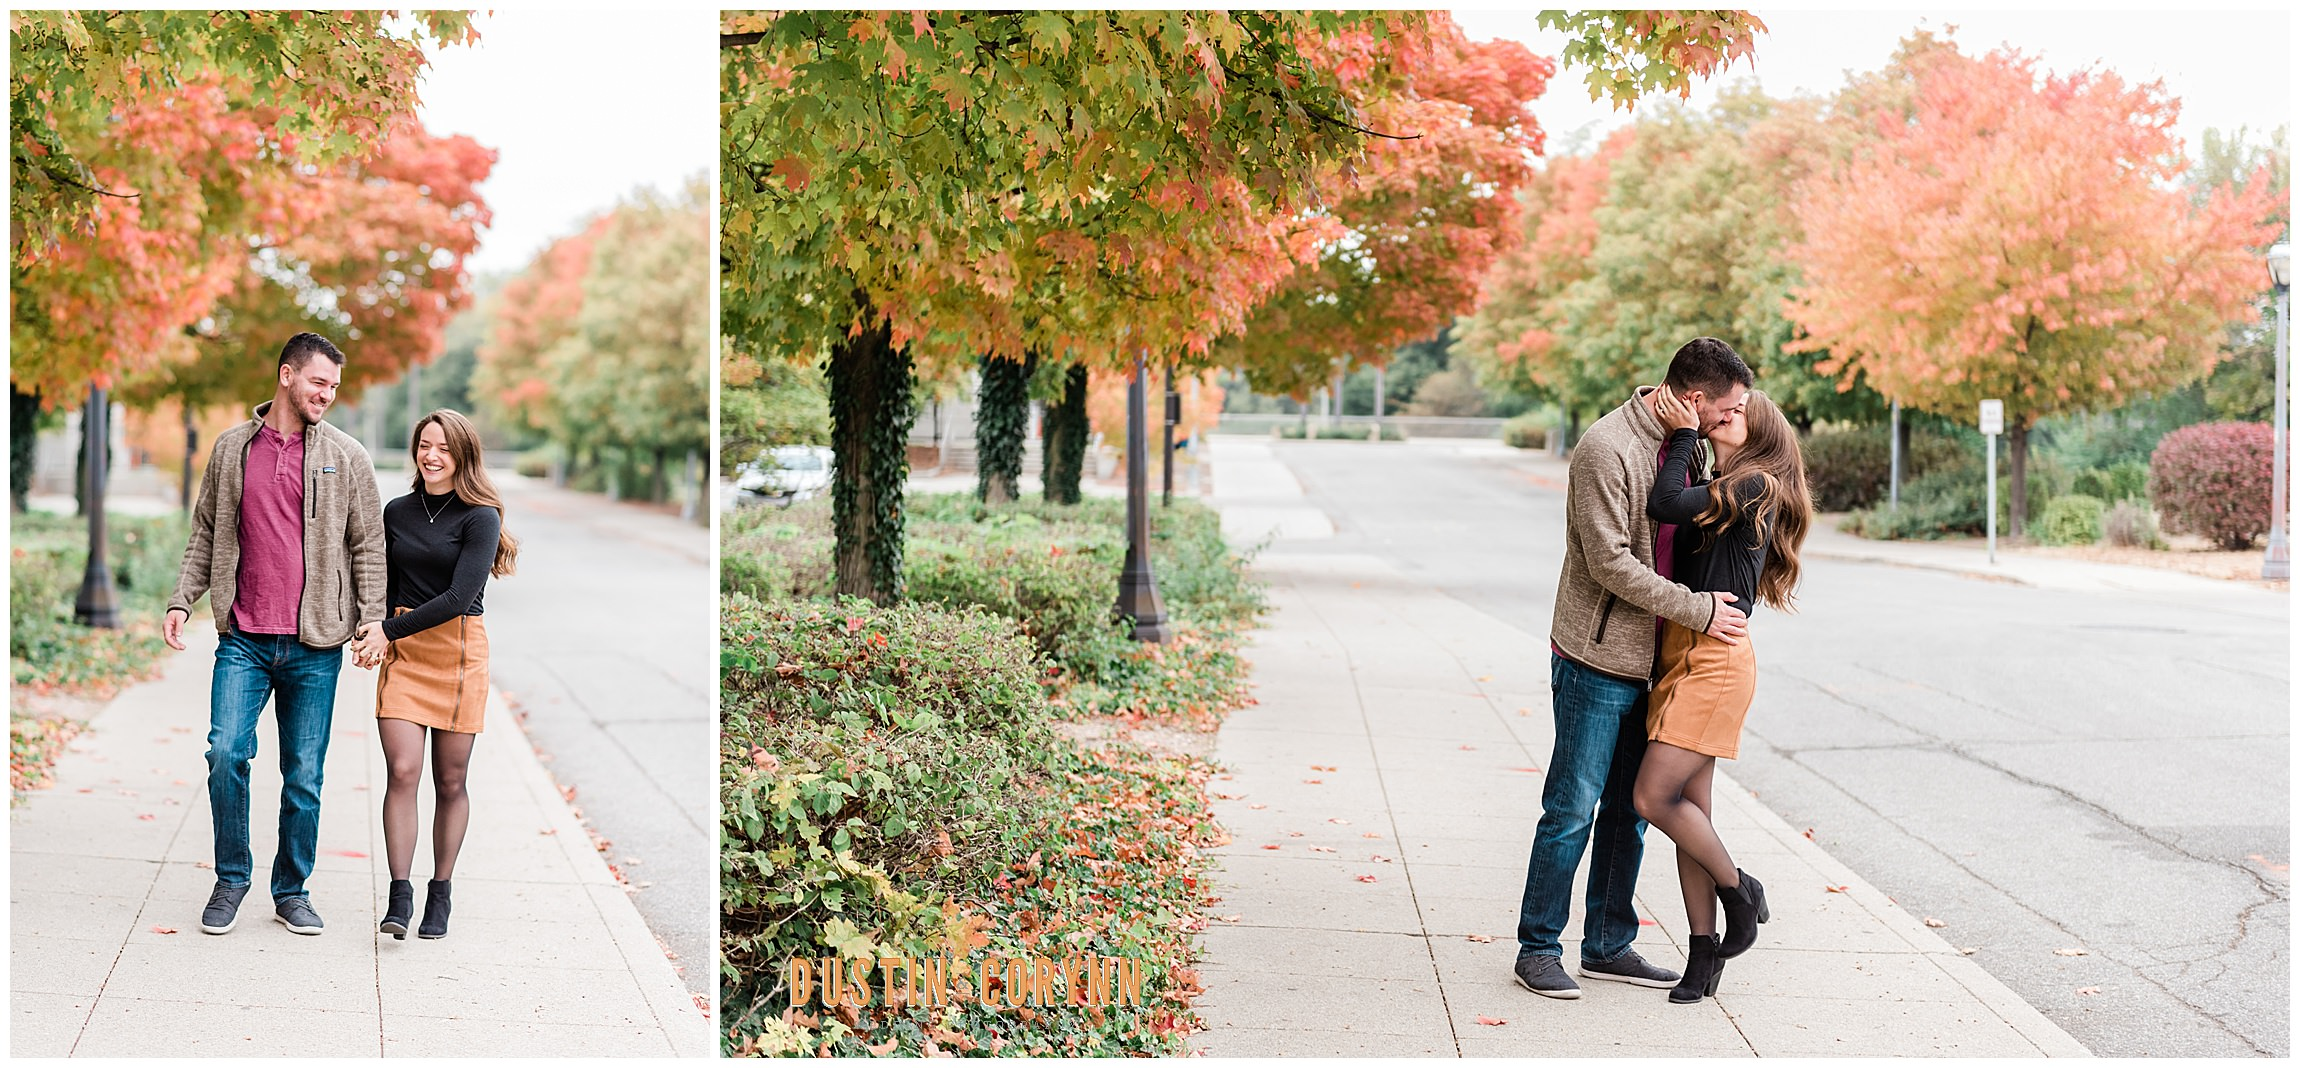 Couple Walking Down the Street during Downtown Engagement Session